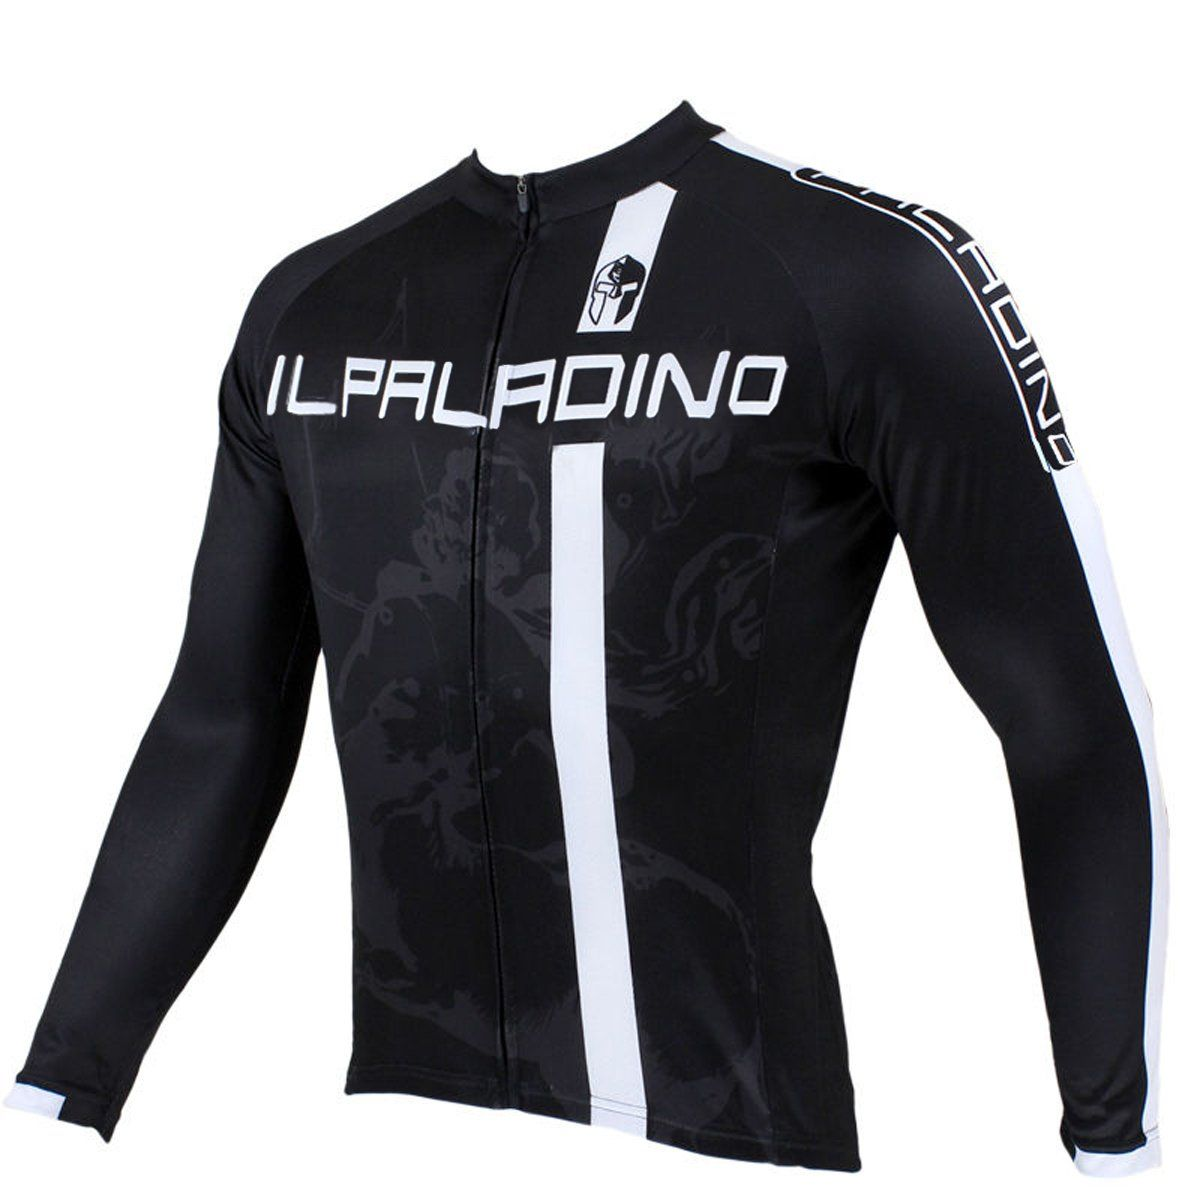 ILPALADINO Human Head Horse Body Man s Short long-sleeve Cycling Jersey  Team Jacket T-shirt Summer Spring Autumn Clothes Sportswear Black NO.005 -  Cycling ... 59d95aa77